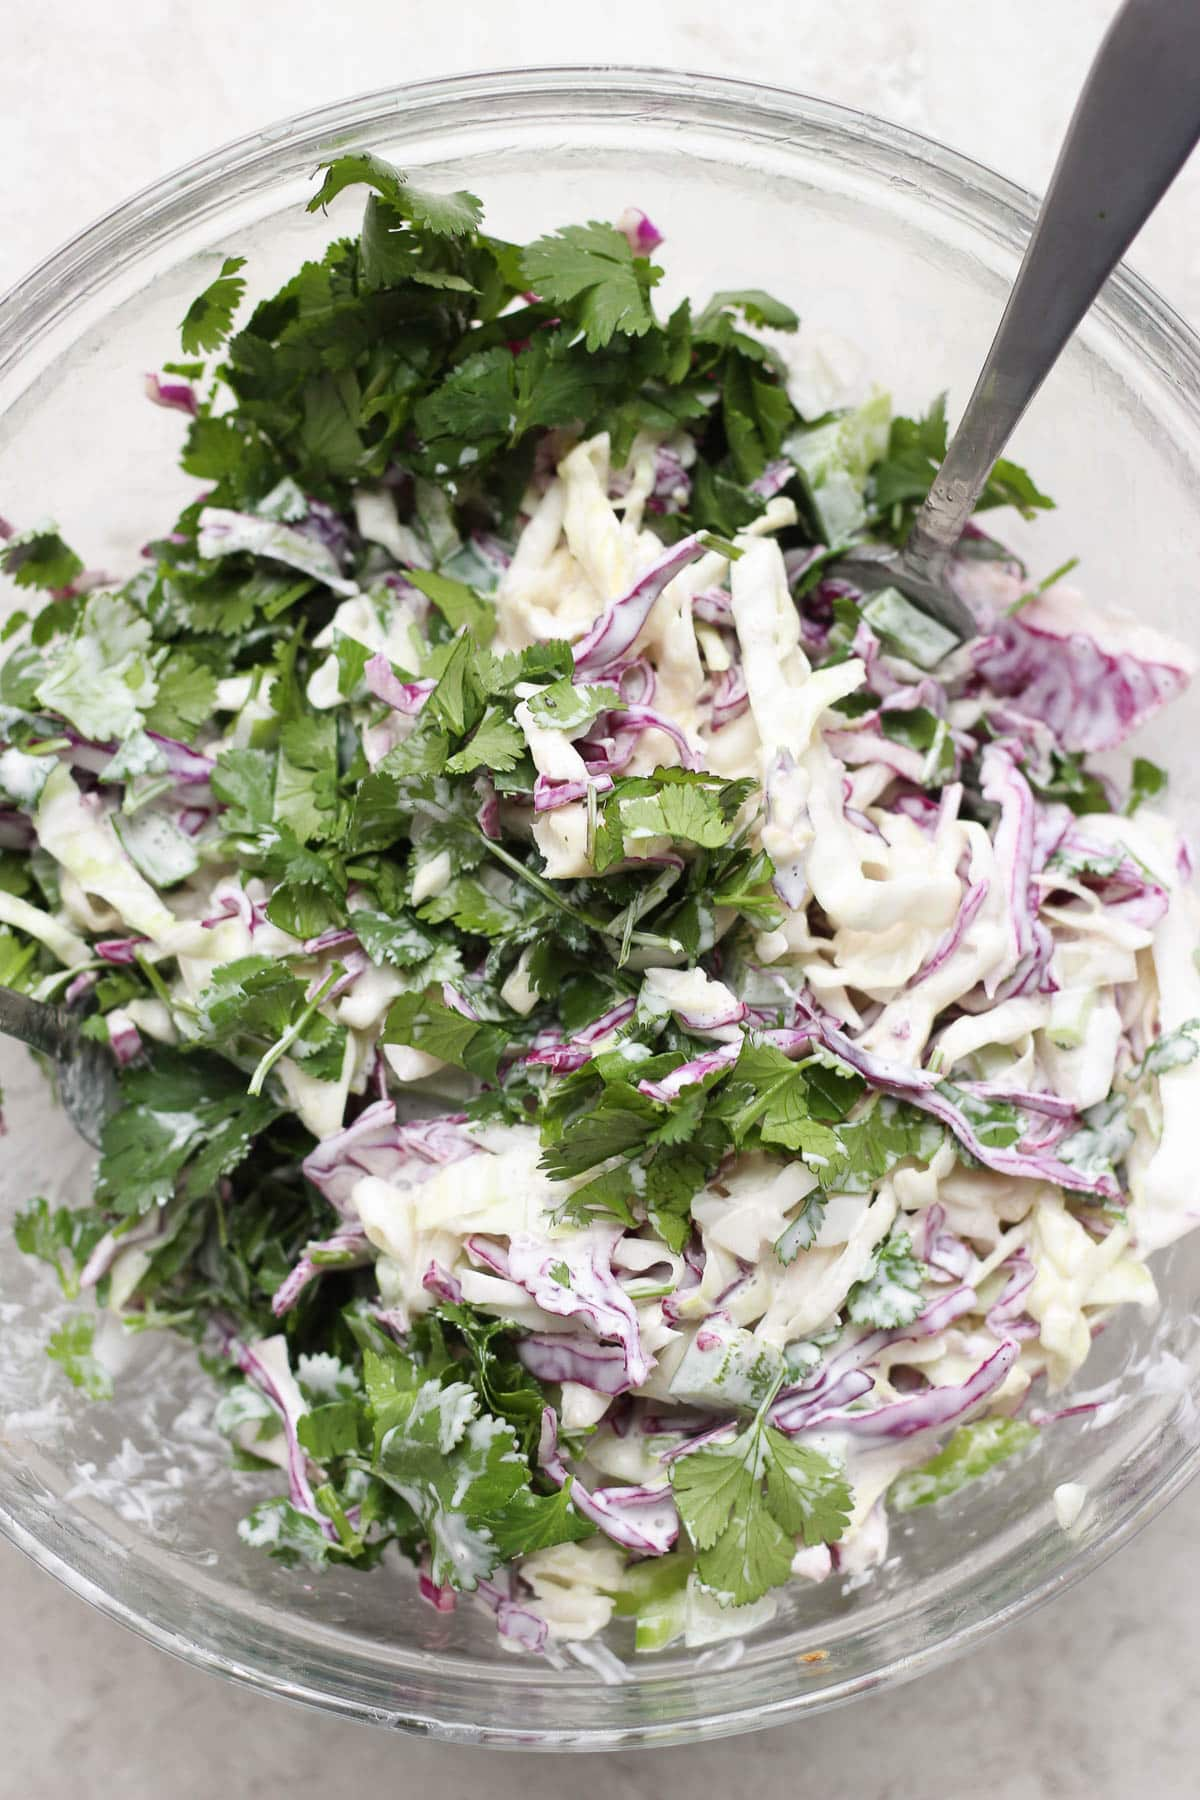 Glass bowl full of spicy purple cabbage coleslaw.